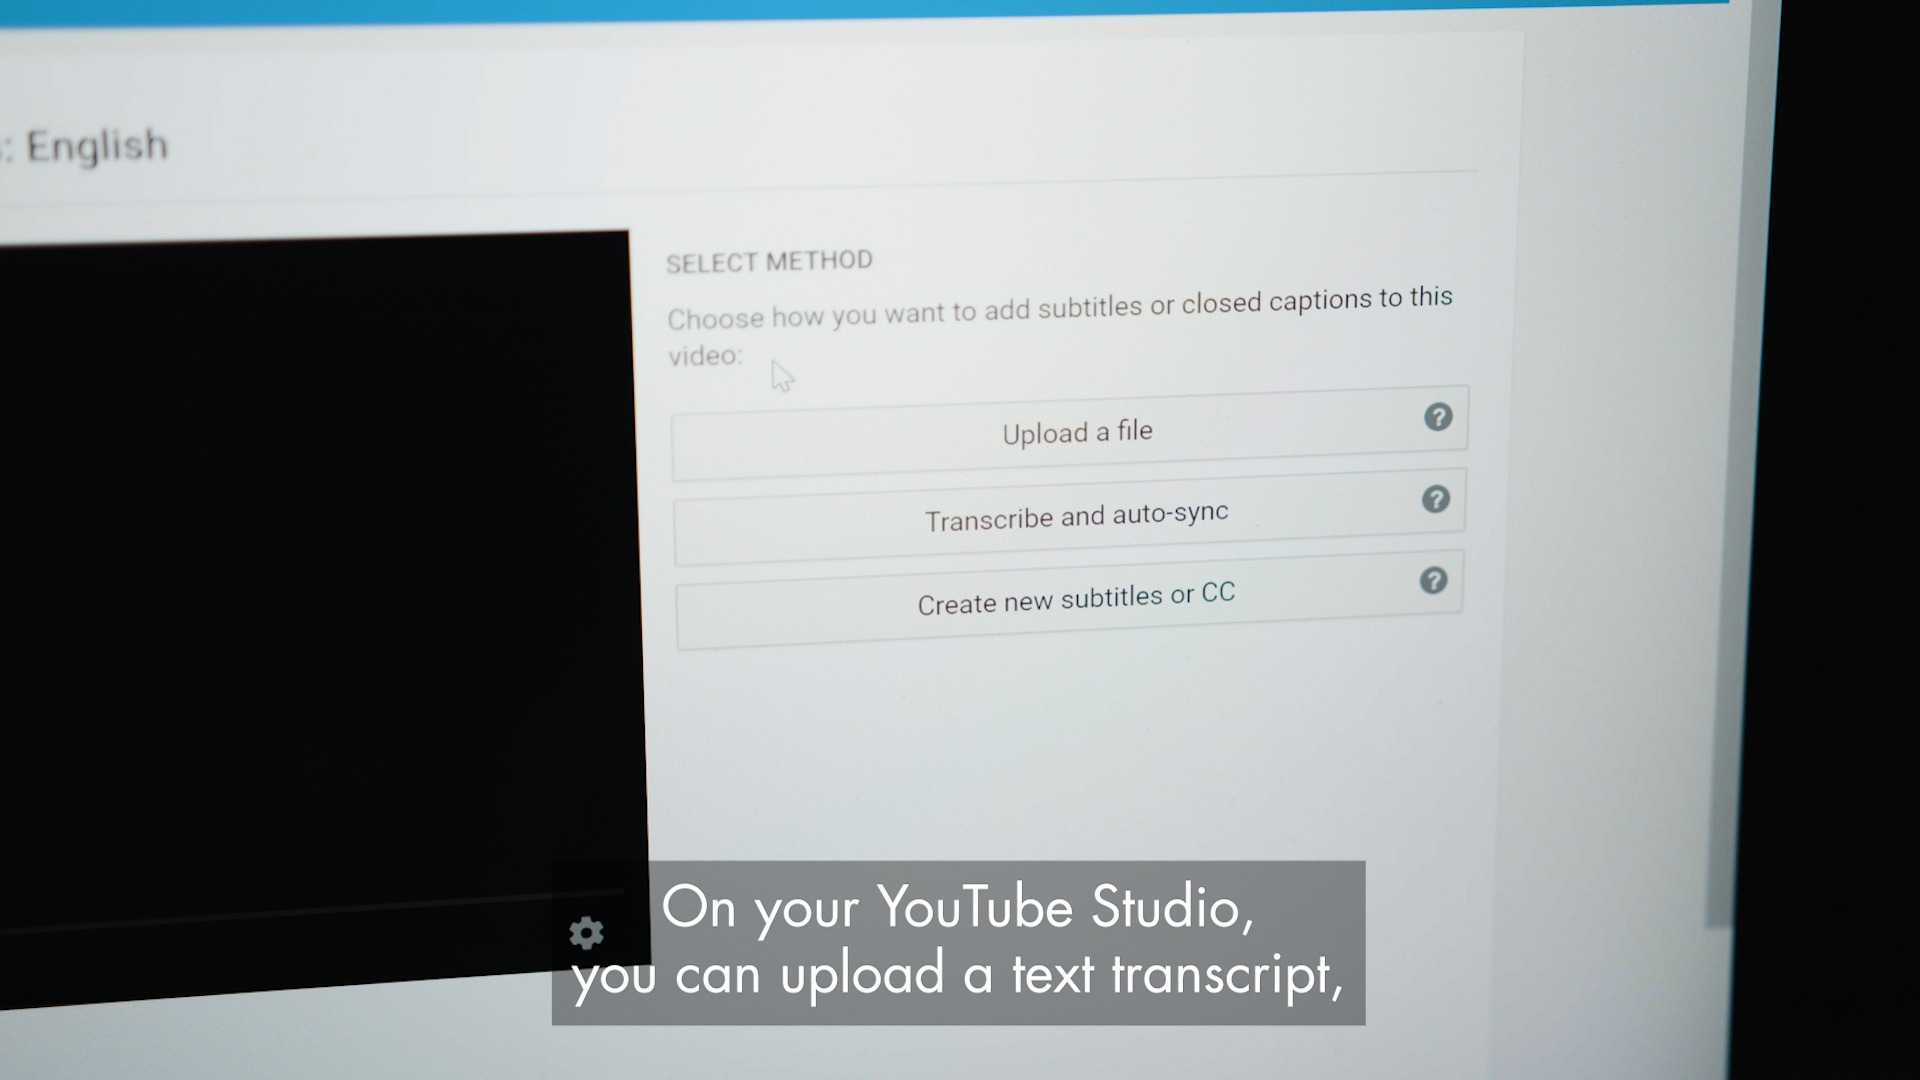 Using Youtube Studio for Subtitles